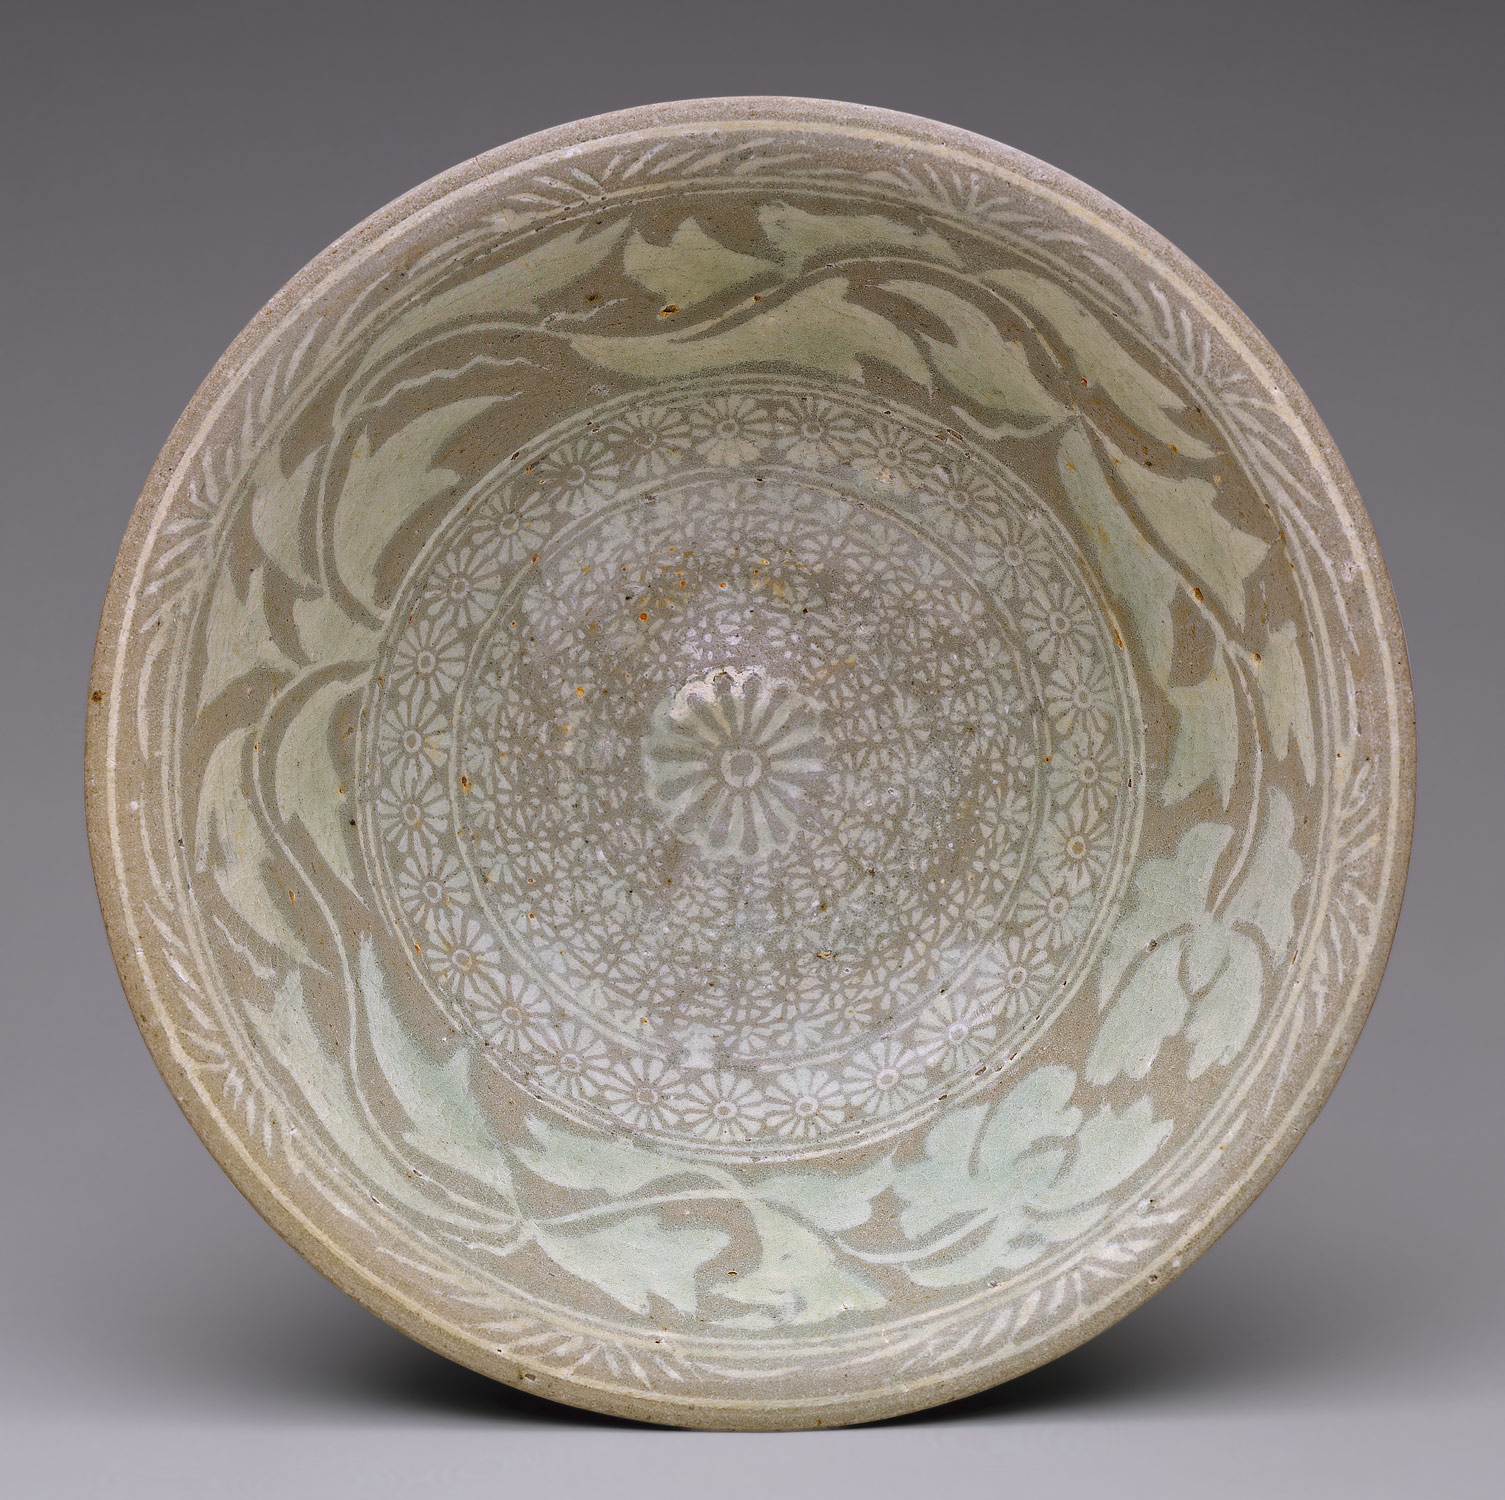 Bowl decorated with peony leaves and chrysanthemum